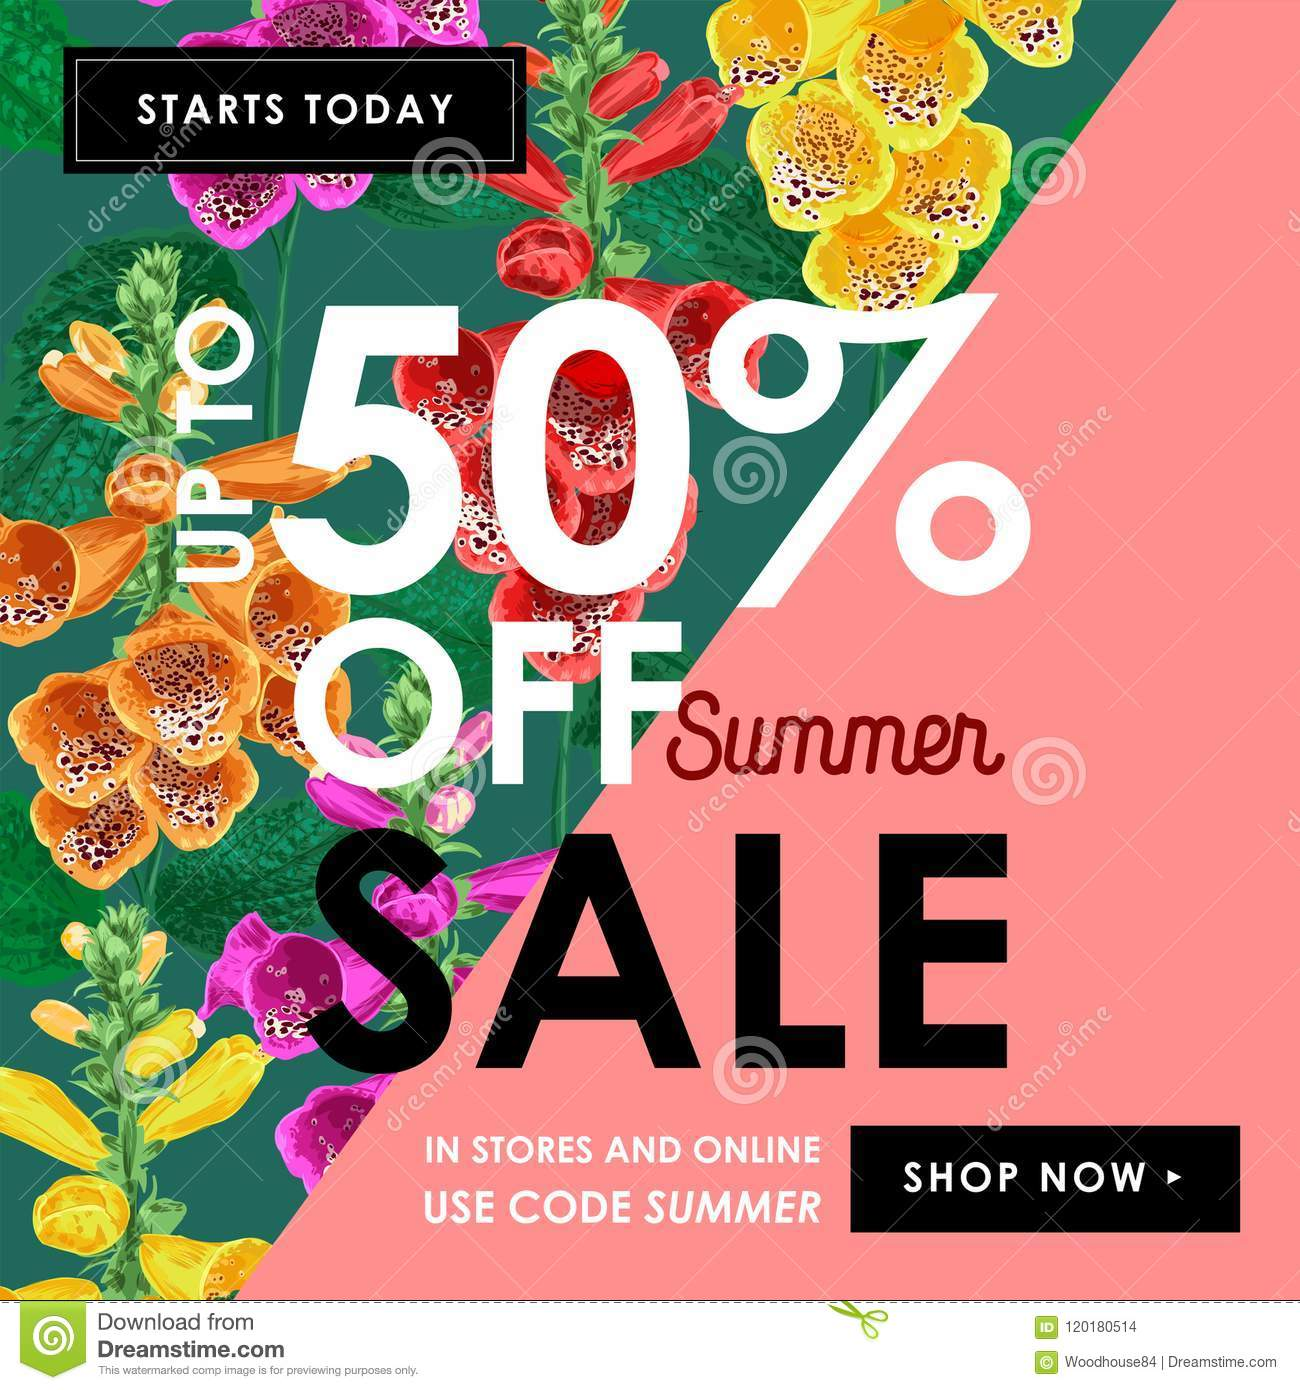 Summer sale tropical banner seasonal promotion with tiger lily seasonal promotion with tiger lily flowers and leaves floral discount izmirmasajfo